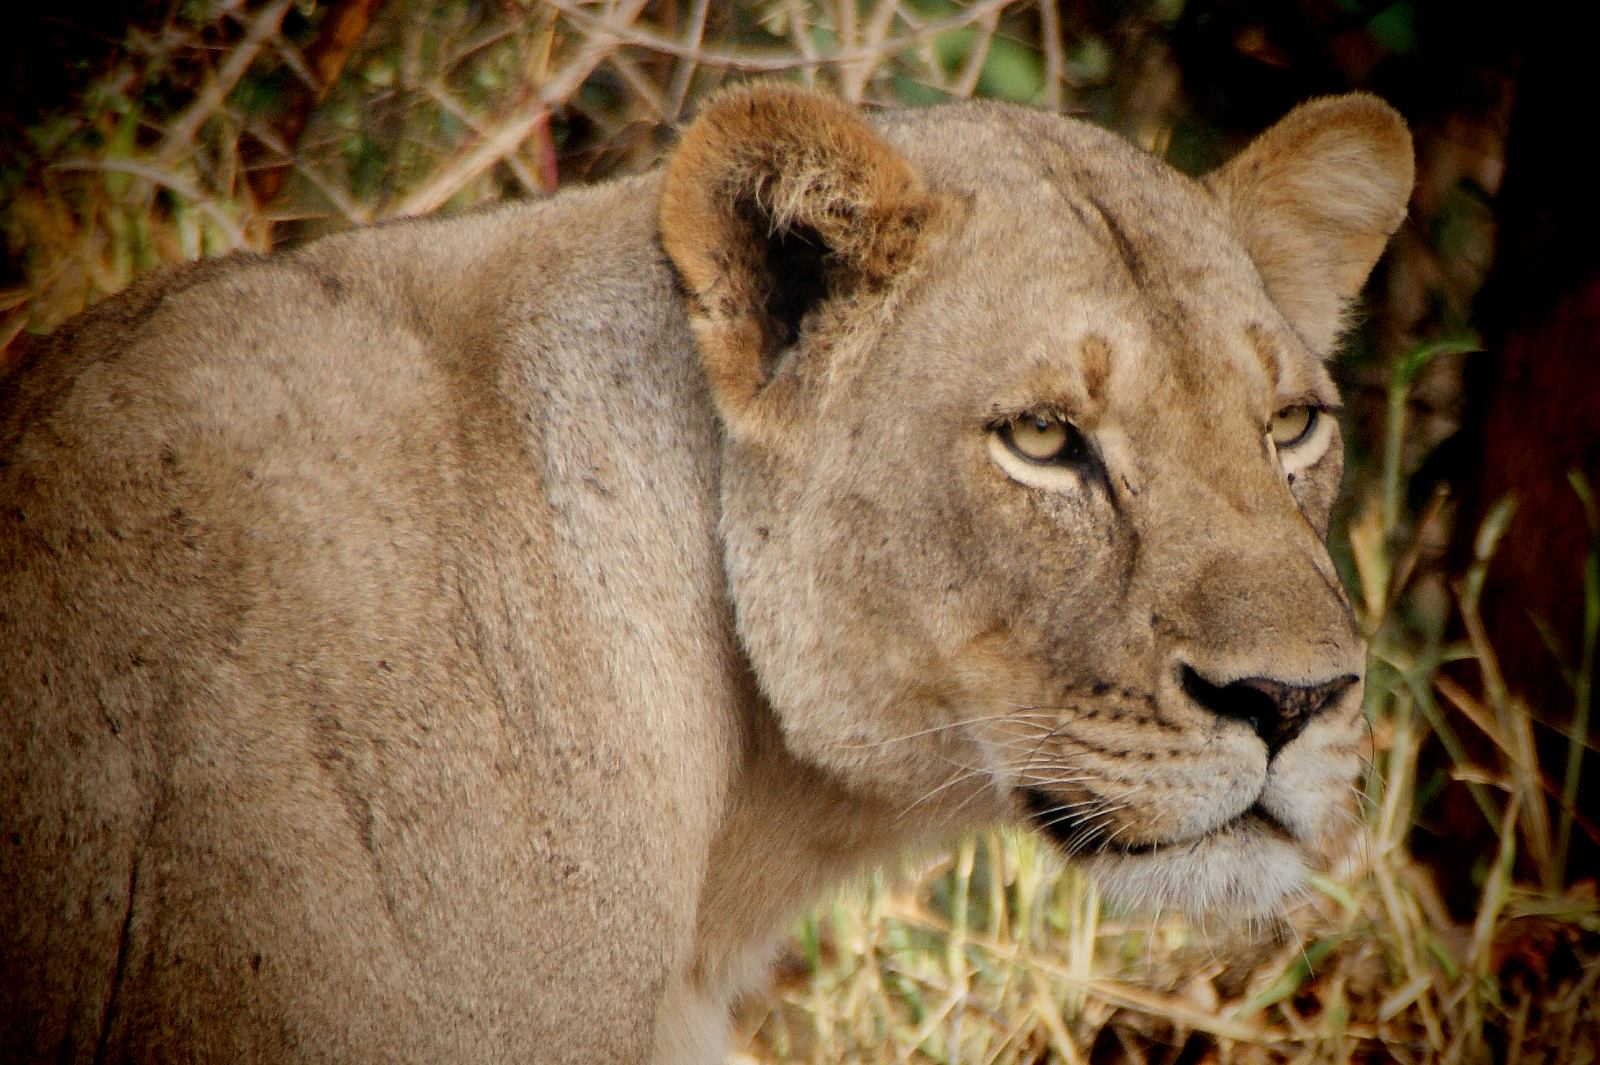 Safari at Kruger National Park in South Africa with Lion encounters